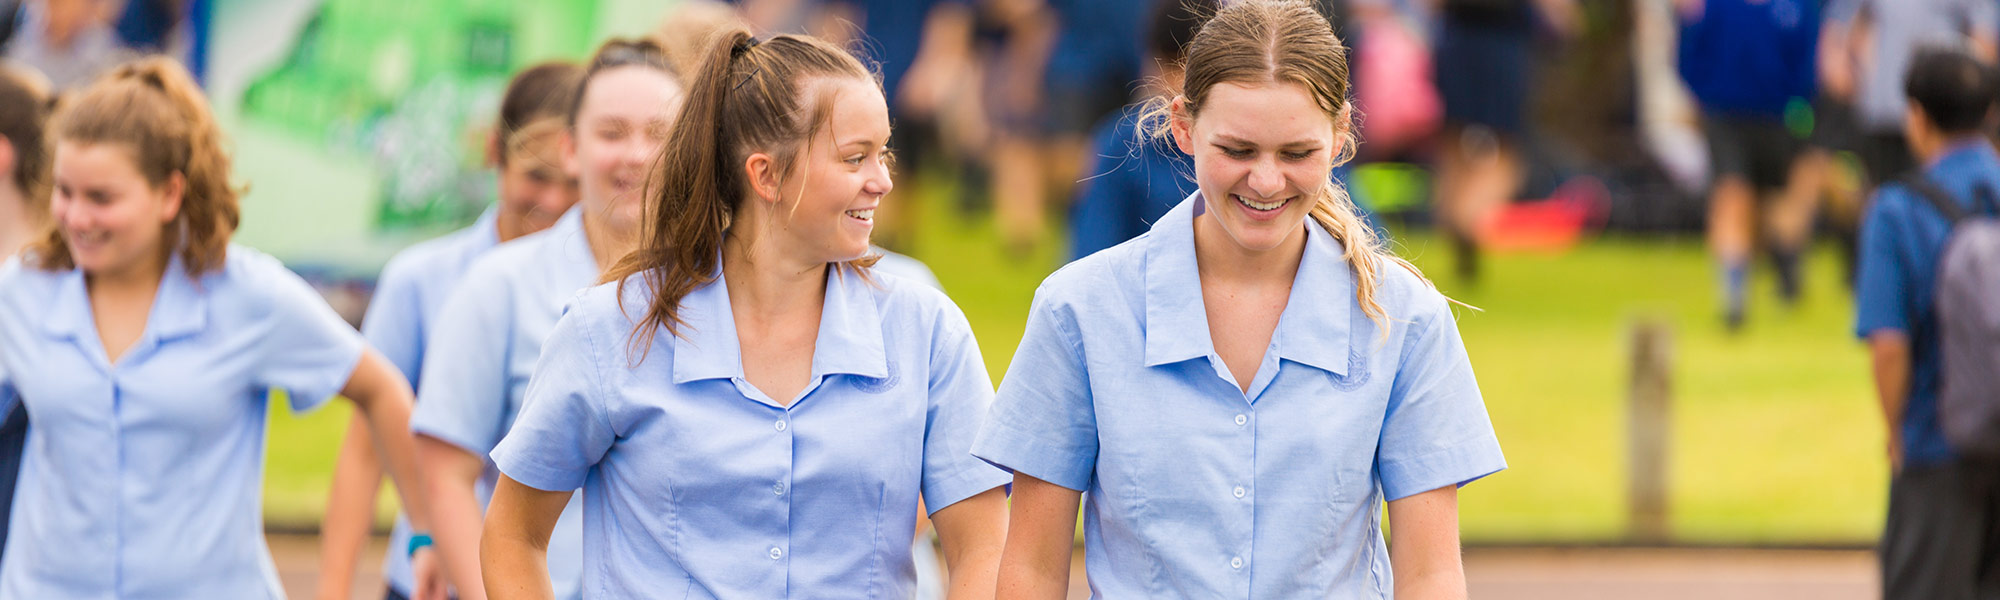 Saint-Kentigern-Senior-College-Student-Wellbeing-at-School.jpg